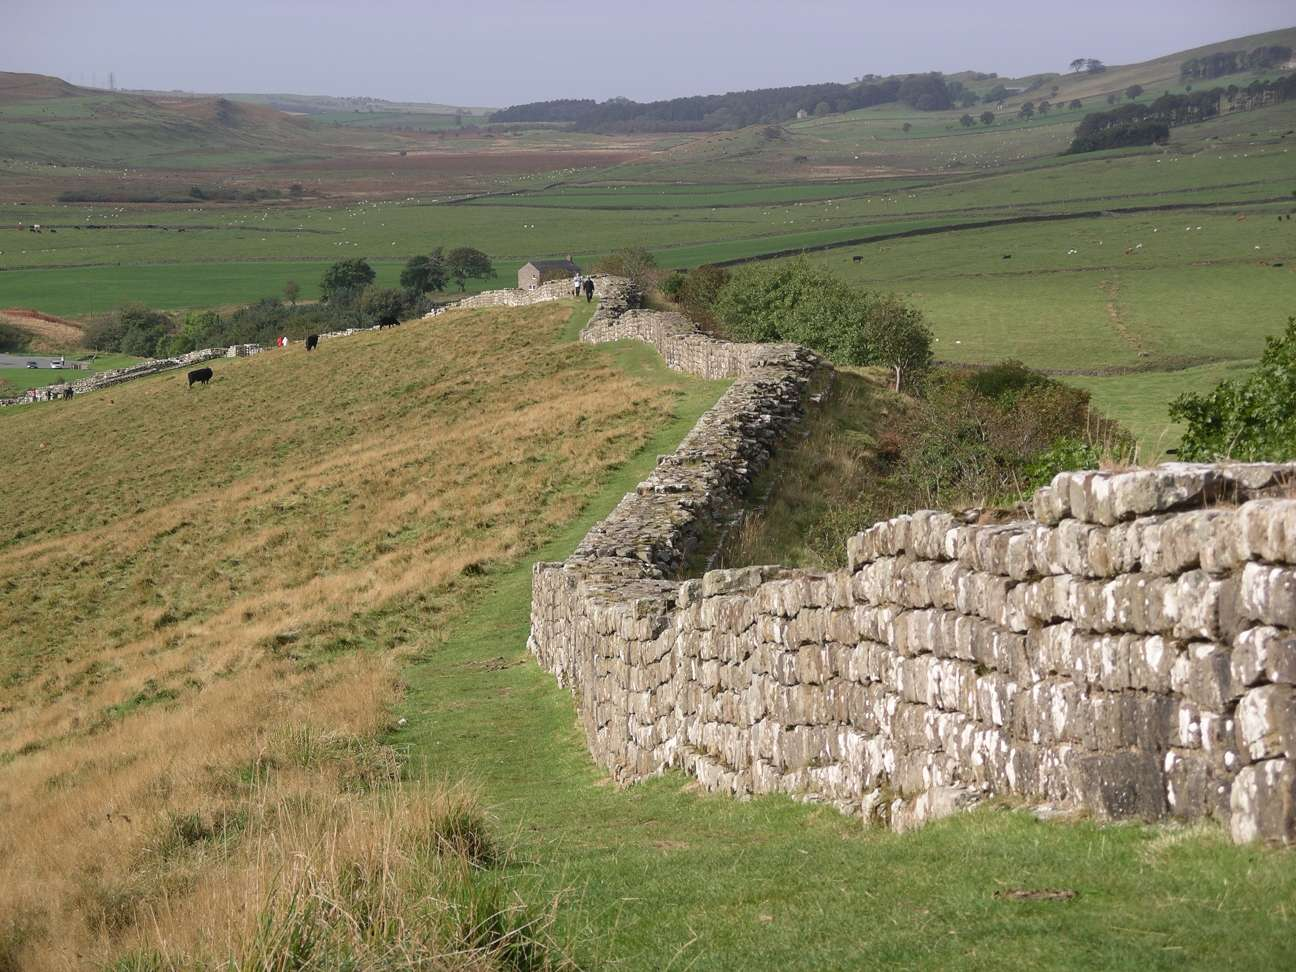 """Hadrian's wall at Greenhead Lough"" by Velella - Personal photograph taken by Velella.. Licensed under Public domain via Wikimedia Commons."